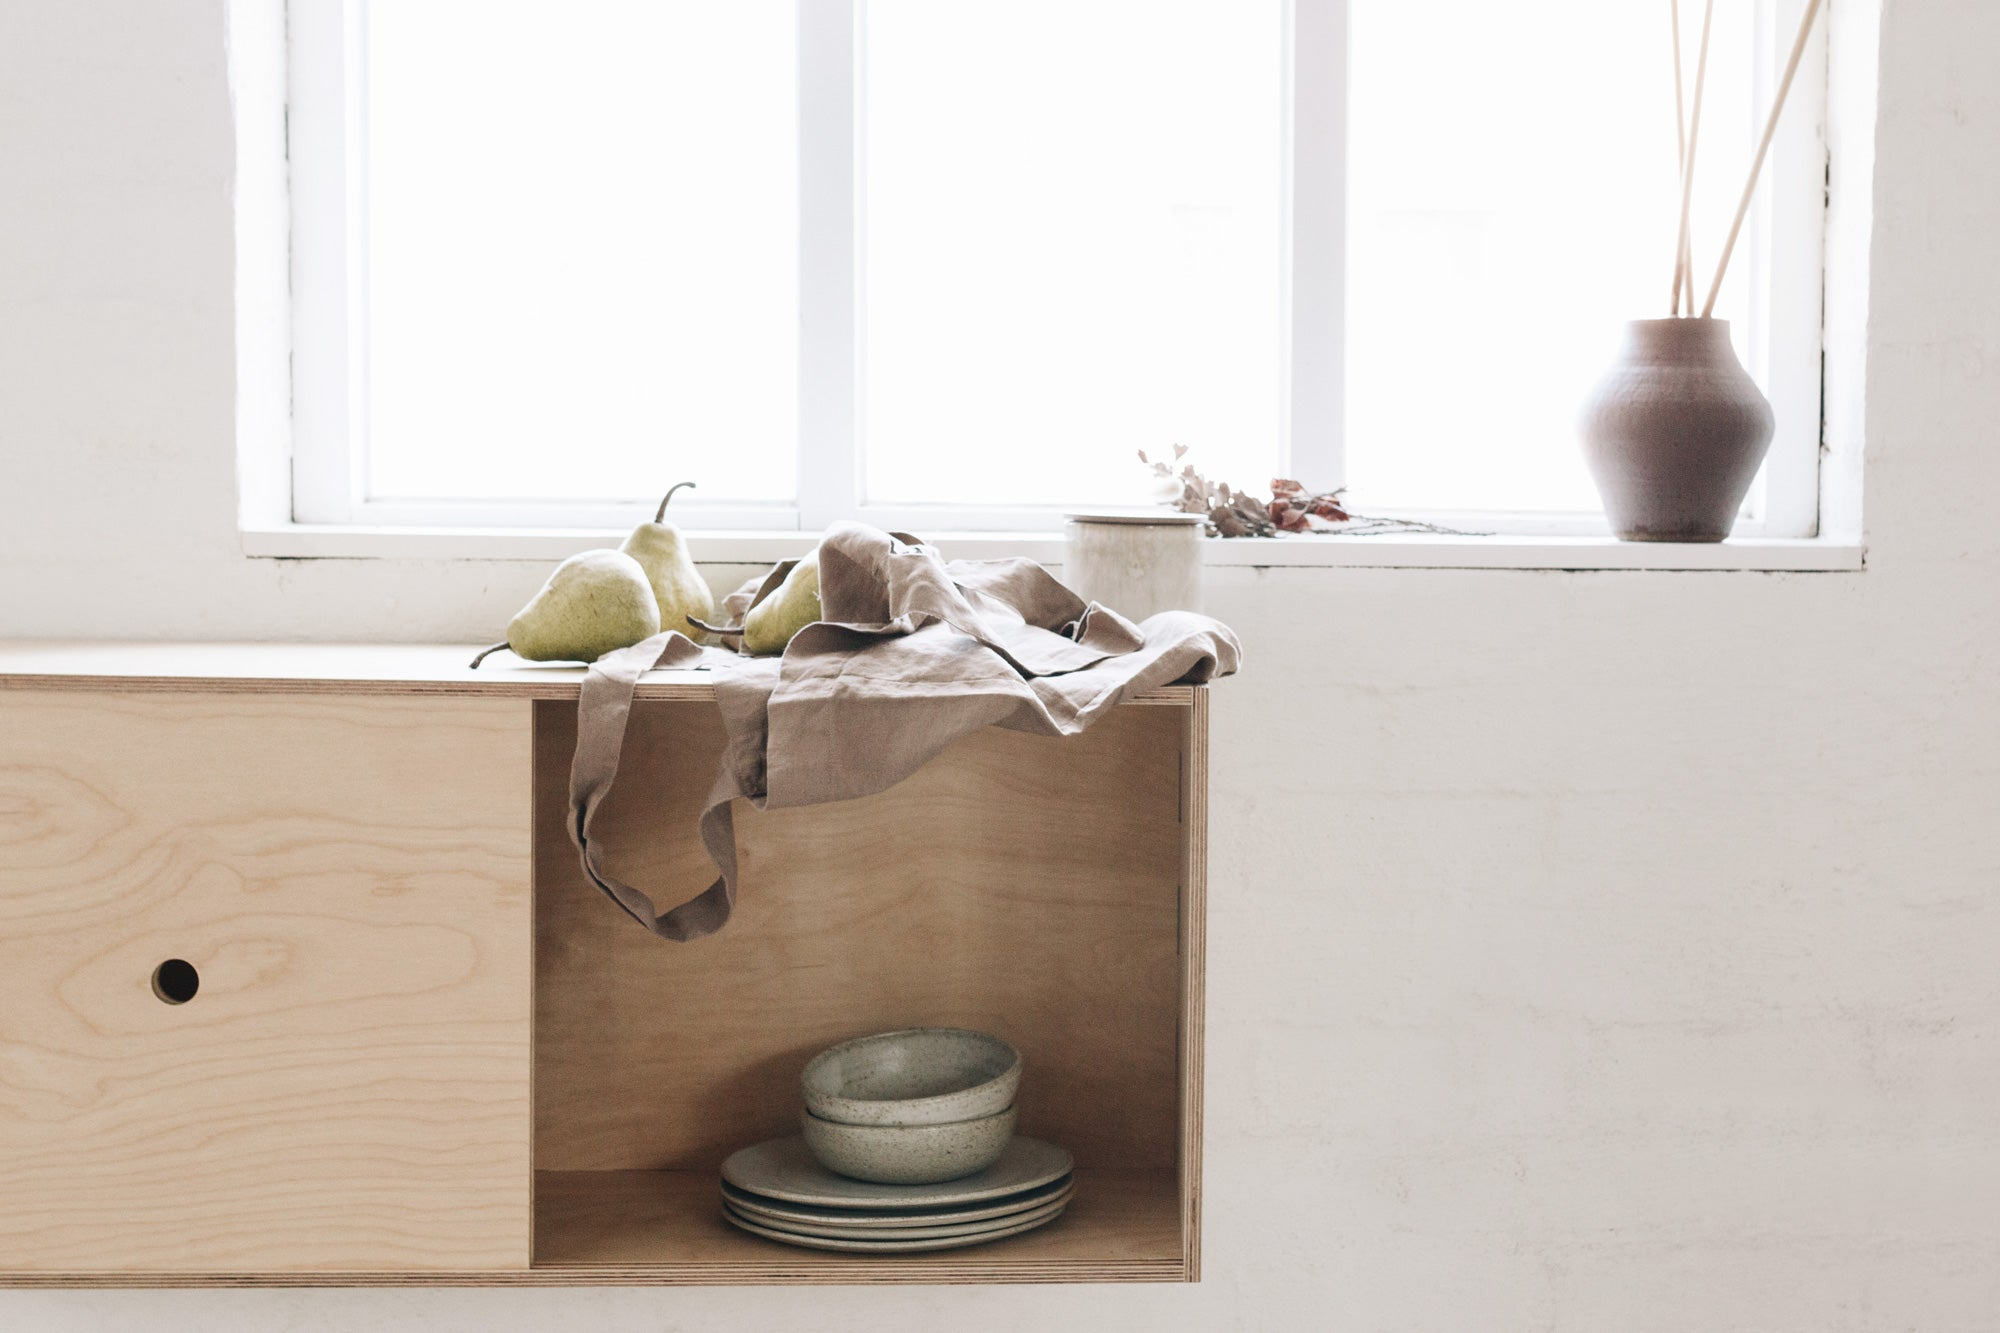 The Big Nest Storage Cabinet - Modern Furniture Design and Storage Made in Melbourne